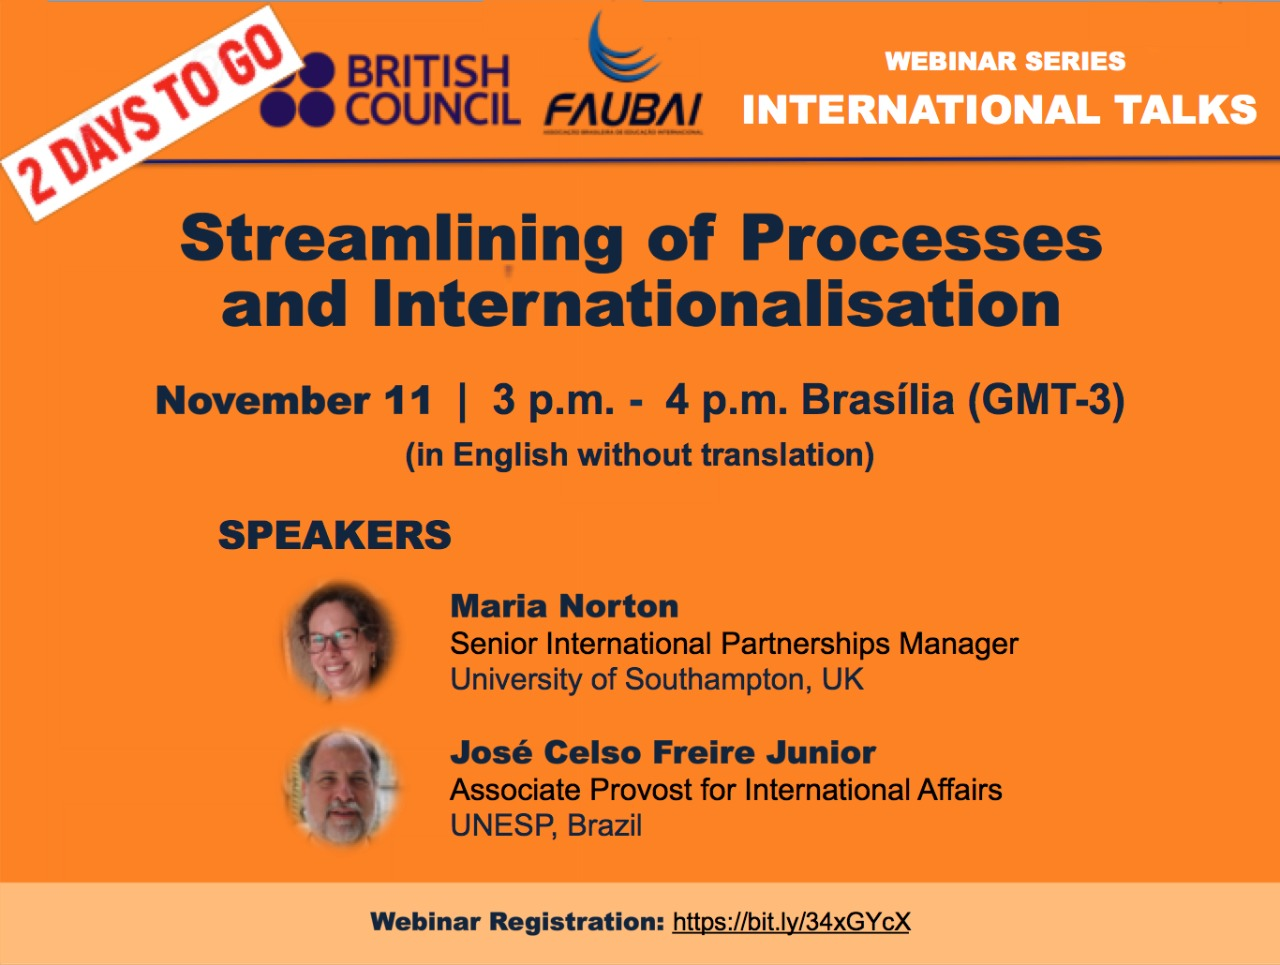 FAUBAI and British Council promote Webinar series about internationalization